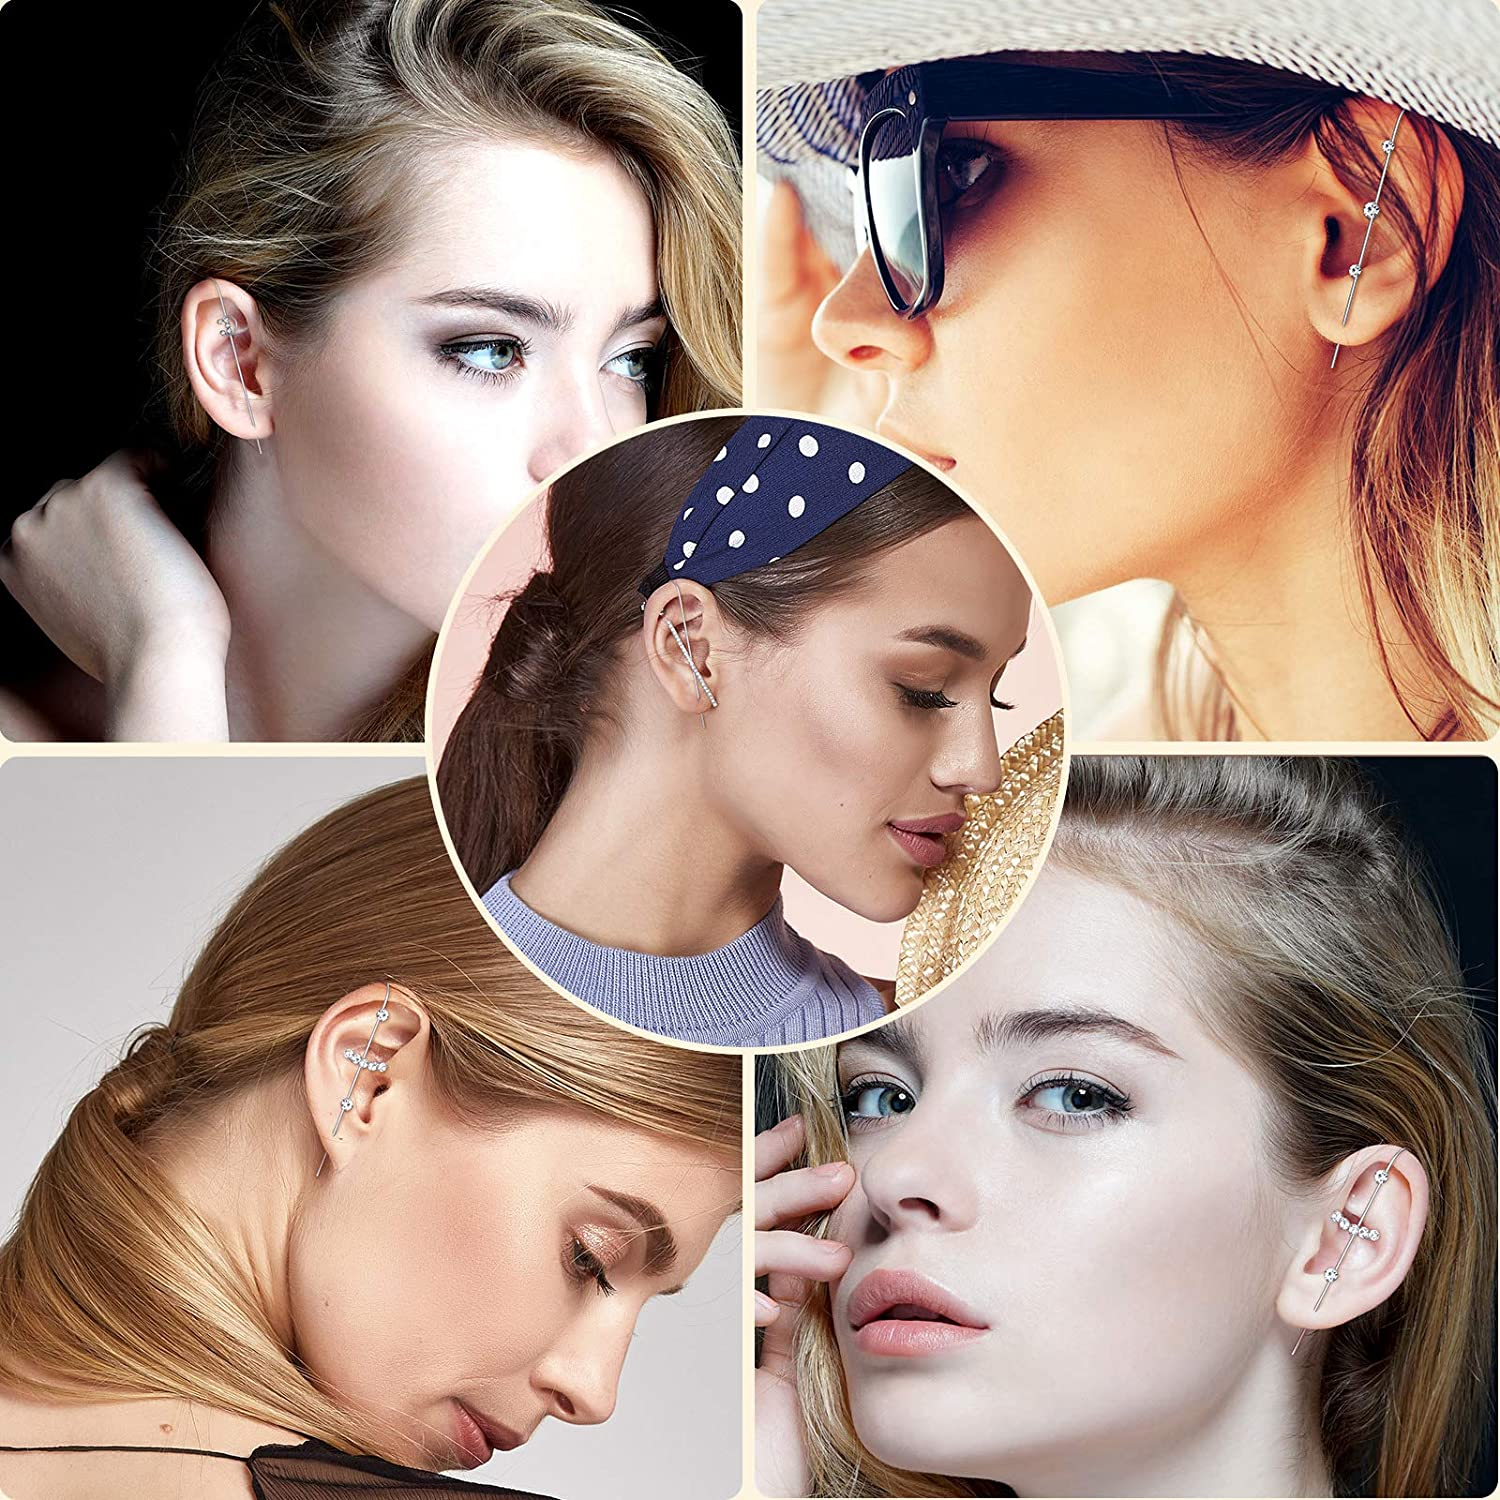 8 Pieces Ear Cuff Wrap Crawler Hook Earrings with Box Cubic Zirconia Ear Crawler Simple Cuff Earrings for Women Girls Chirstmas Birthday Valentines Day